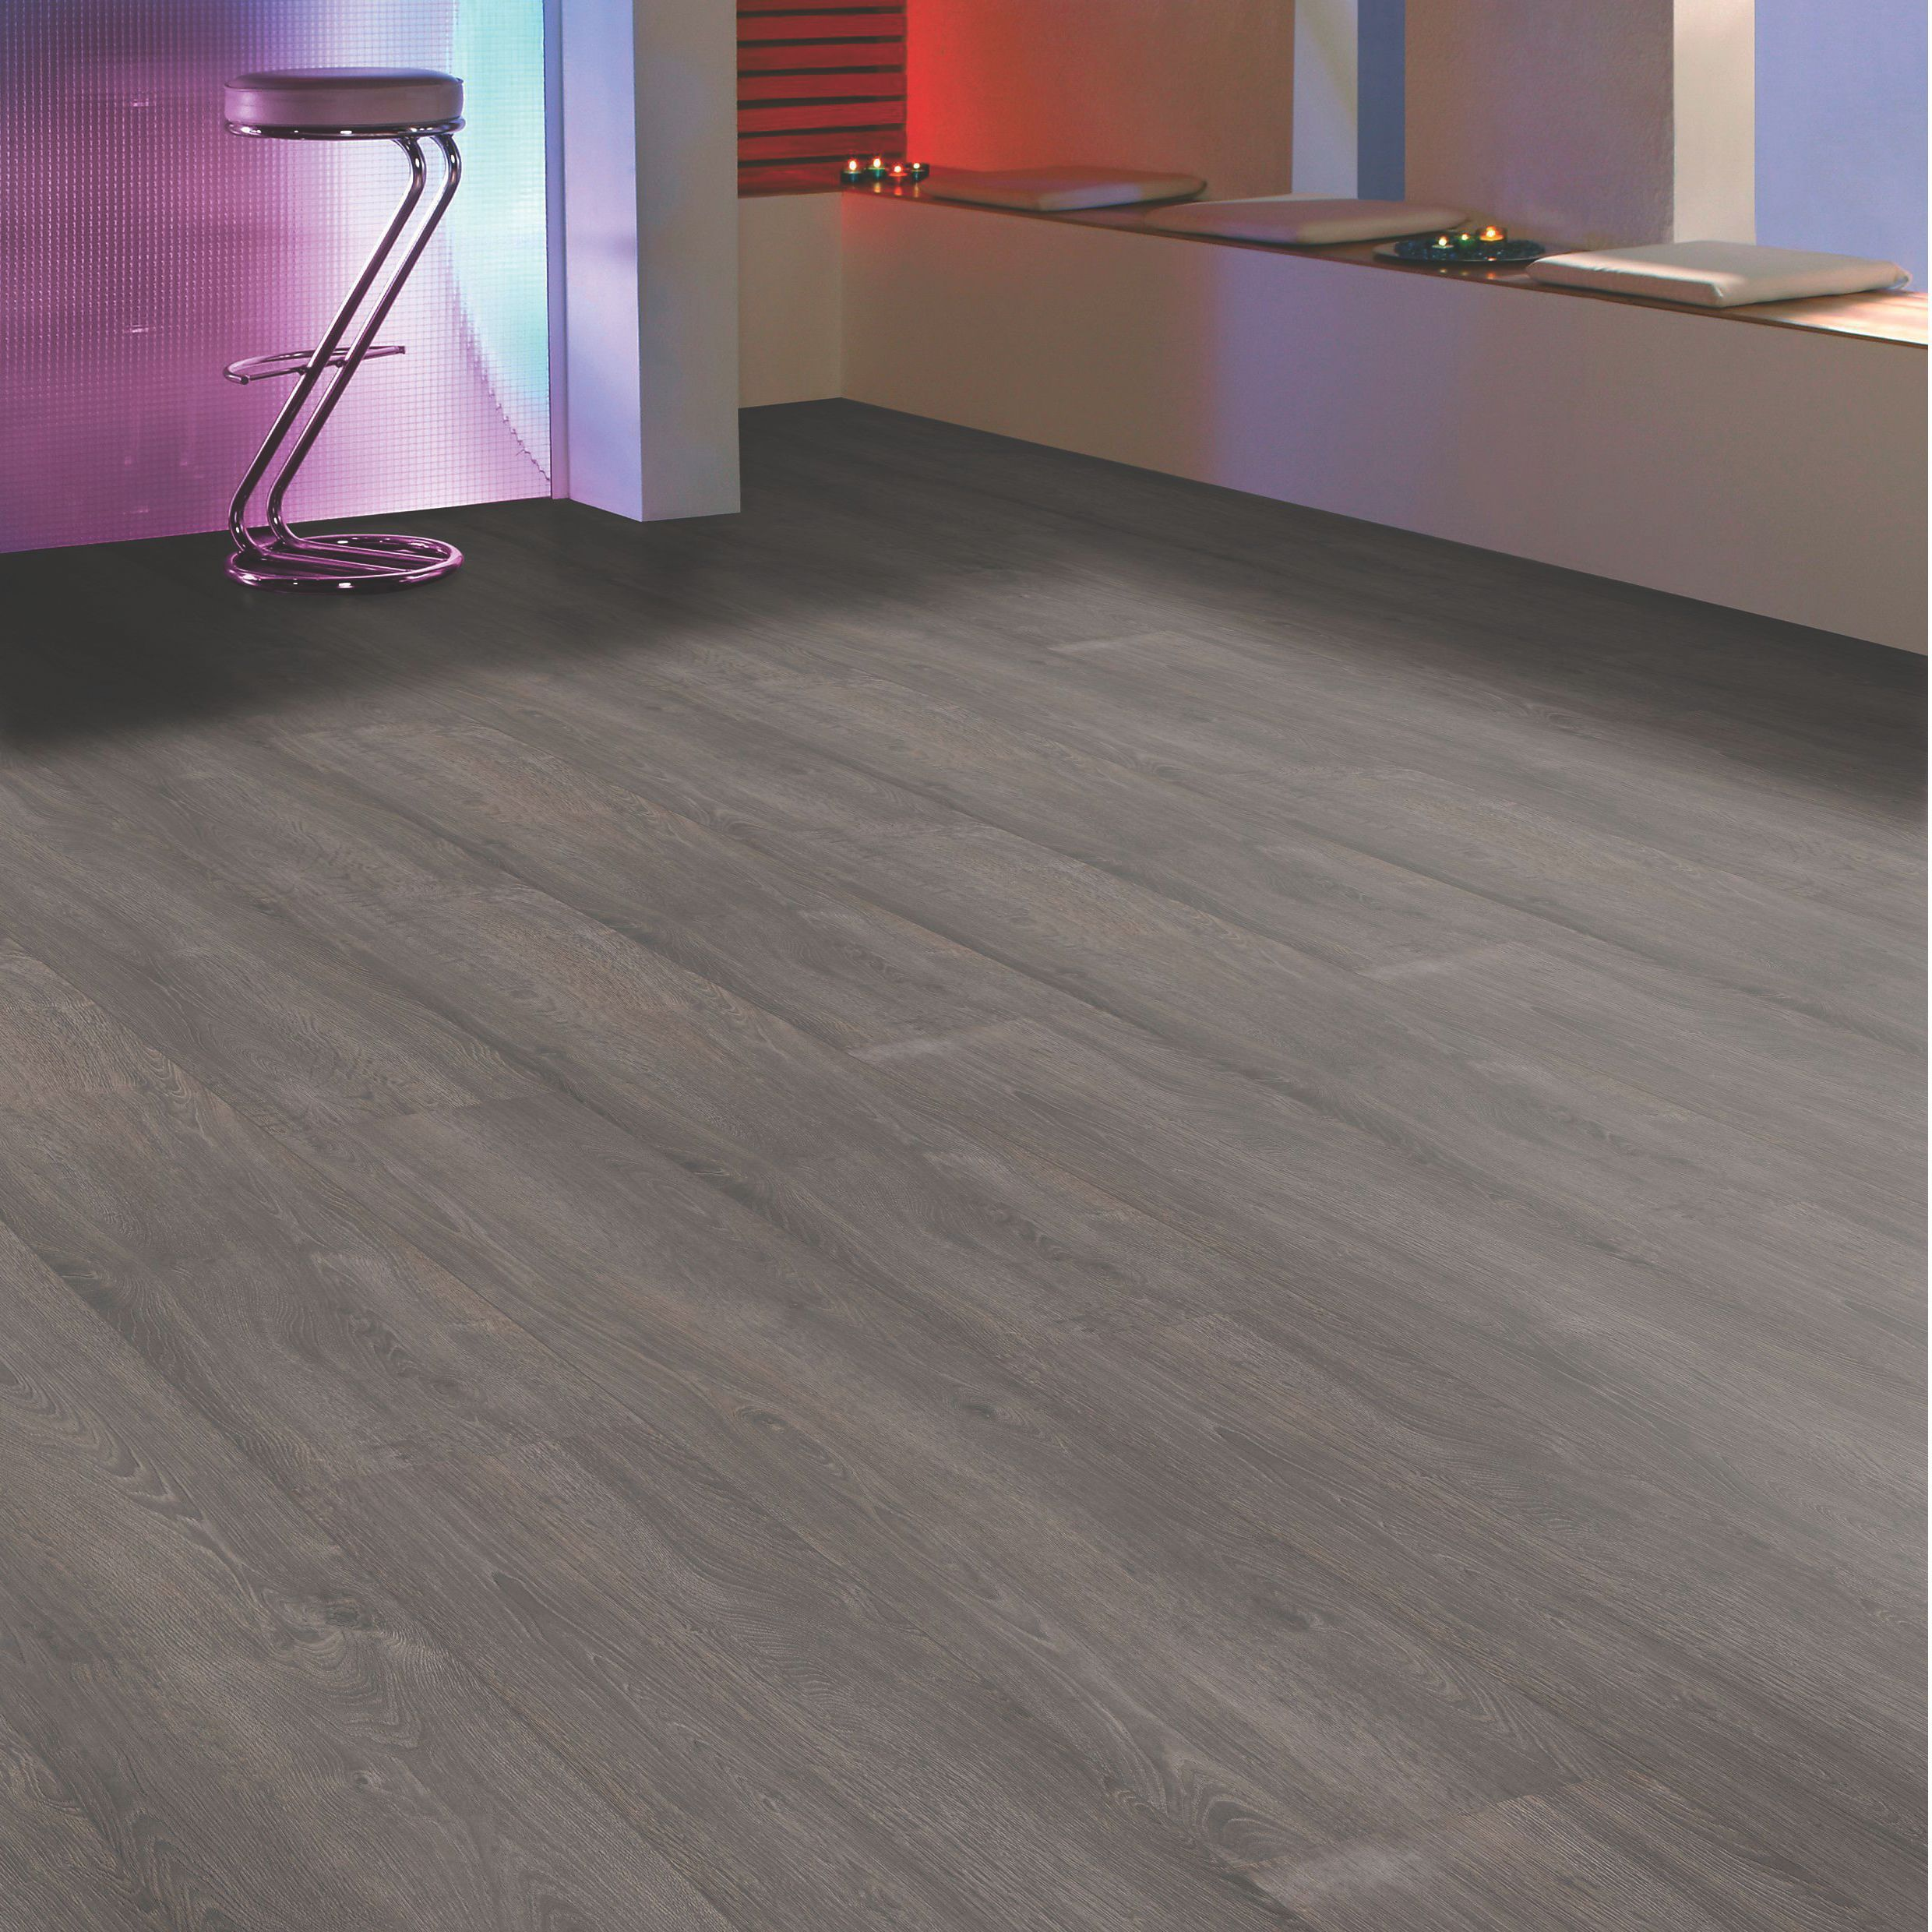 Princeps Santander Oak Effect Wide Plank Laminate Flooring 1 45 M² Pack Departments Diy At B Q